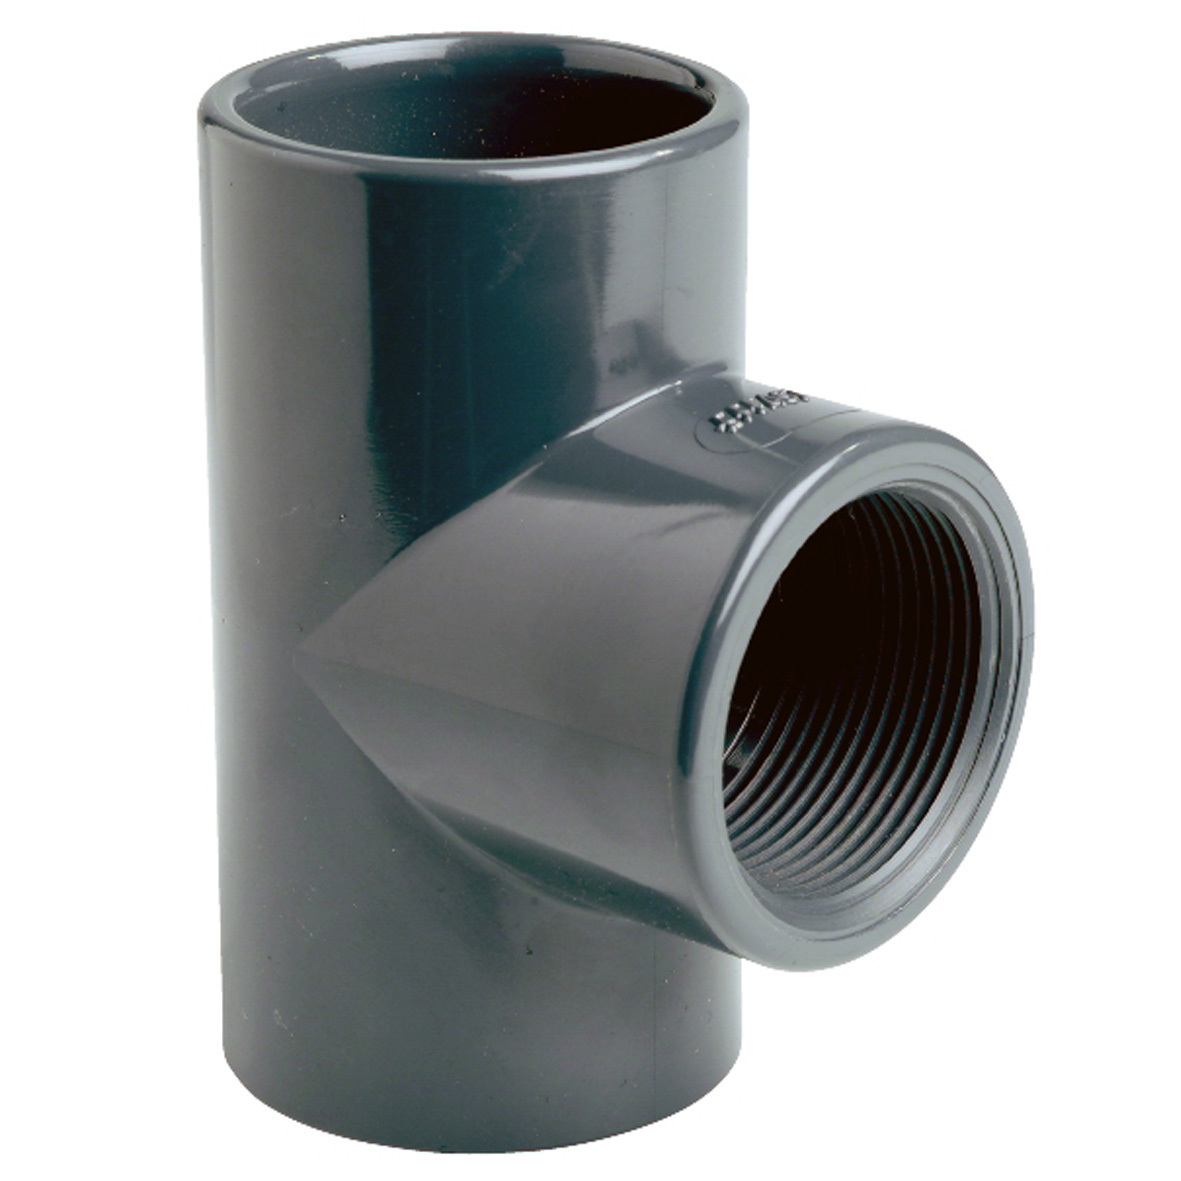 PVC Fittings Online Coupon Codes. PVC Fittings Online began in , when the owners of Commercial Industrial Supply realized the need for an e-commerce store to fill a large void in the PVC fittings marketplace. Today, PVC Fittings Online is a leader in plumbing supply.